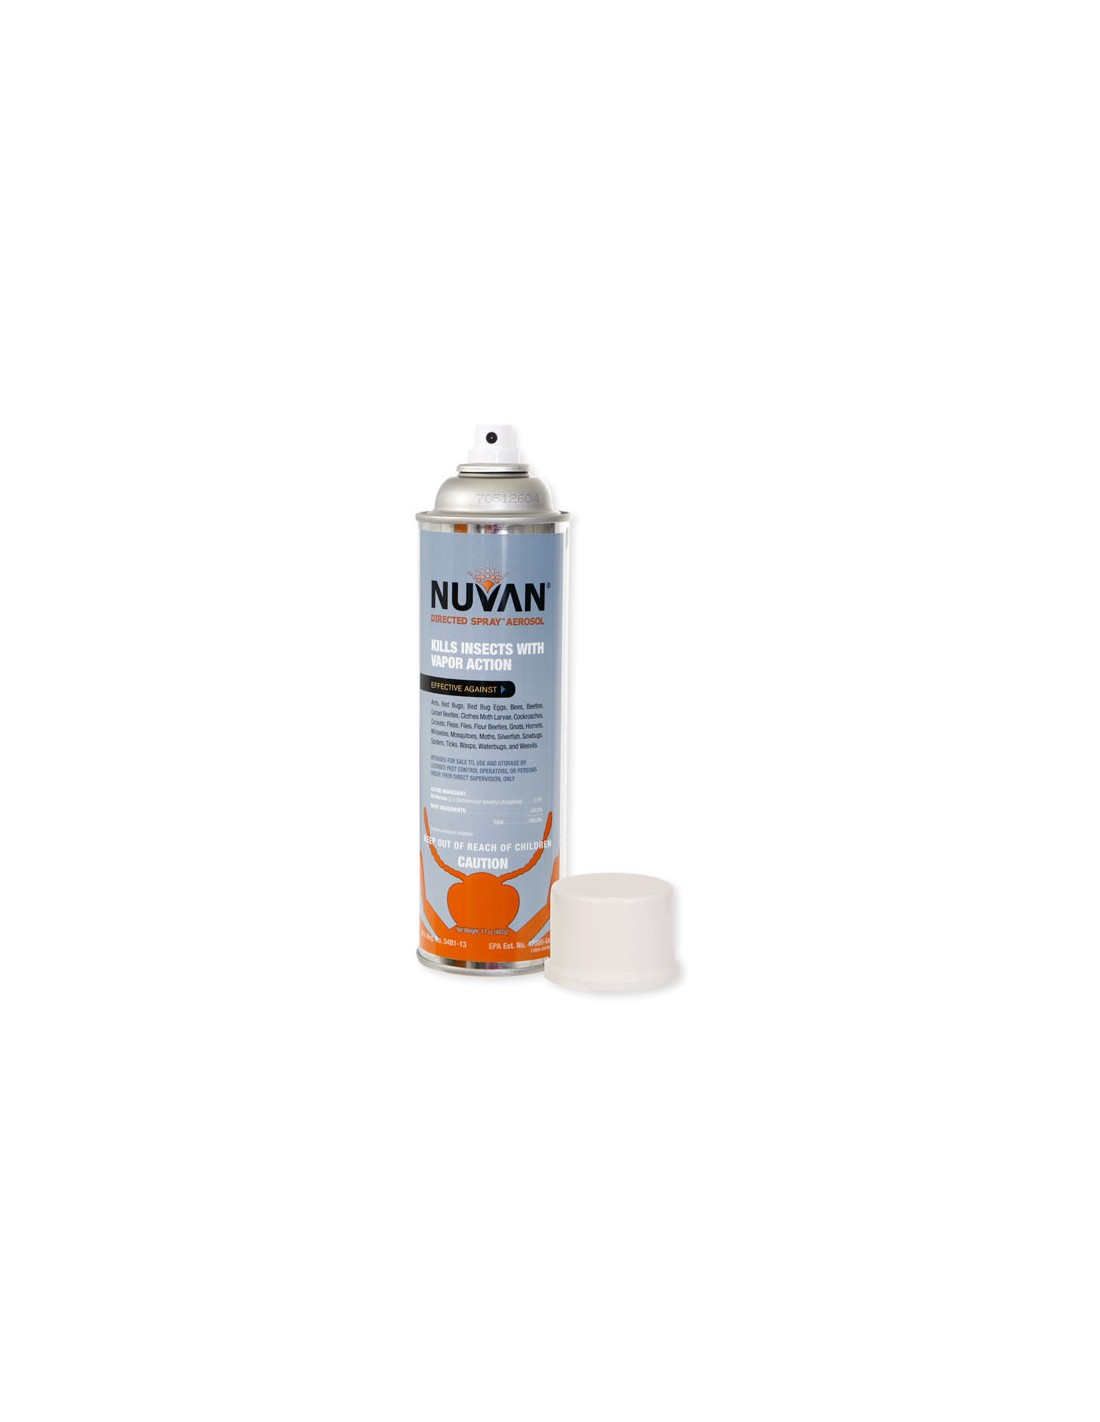 Nuvan Directed Spray Aerosol Questions & Answers